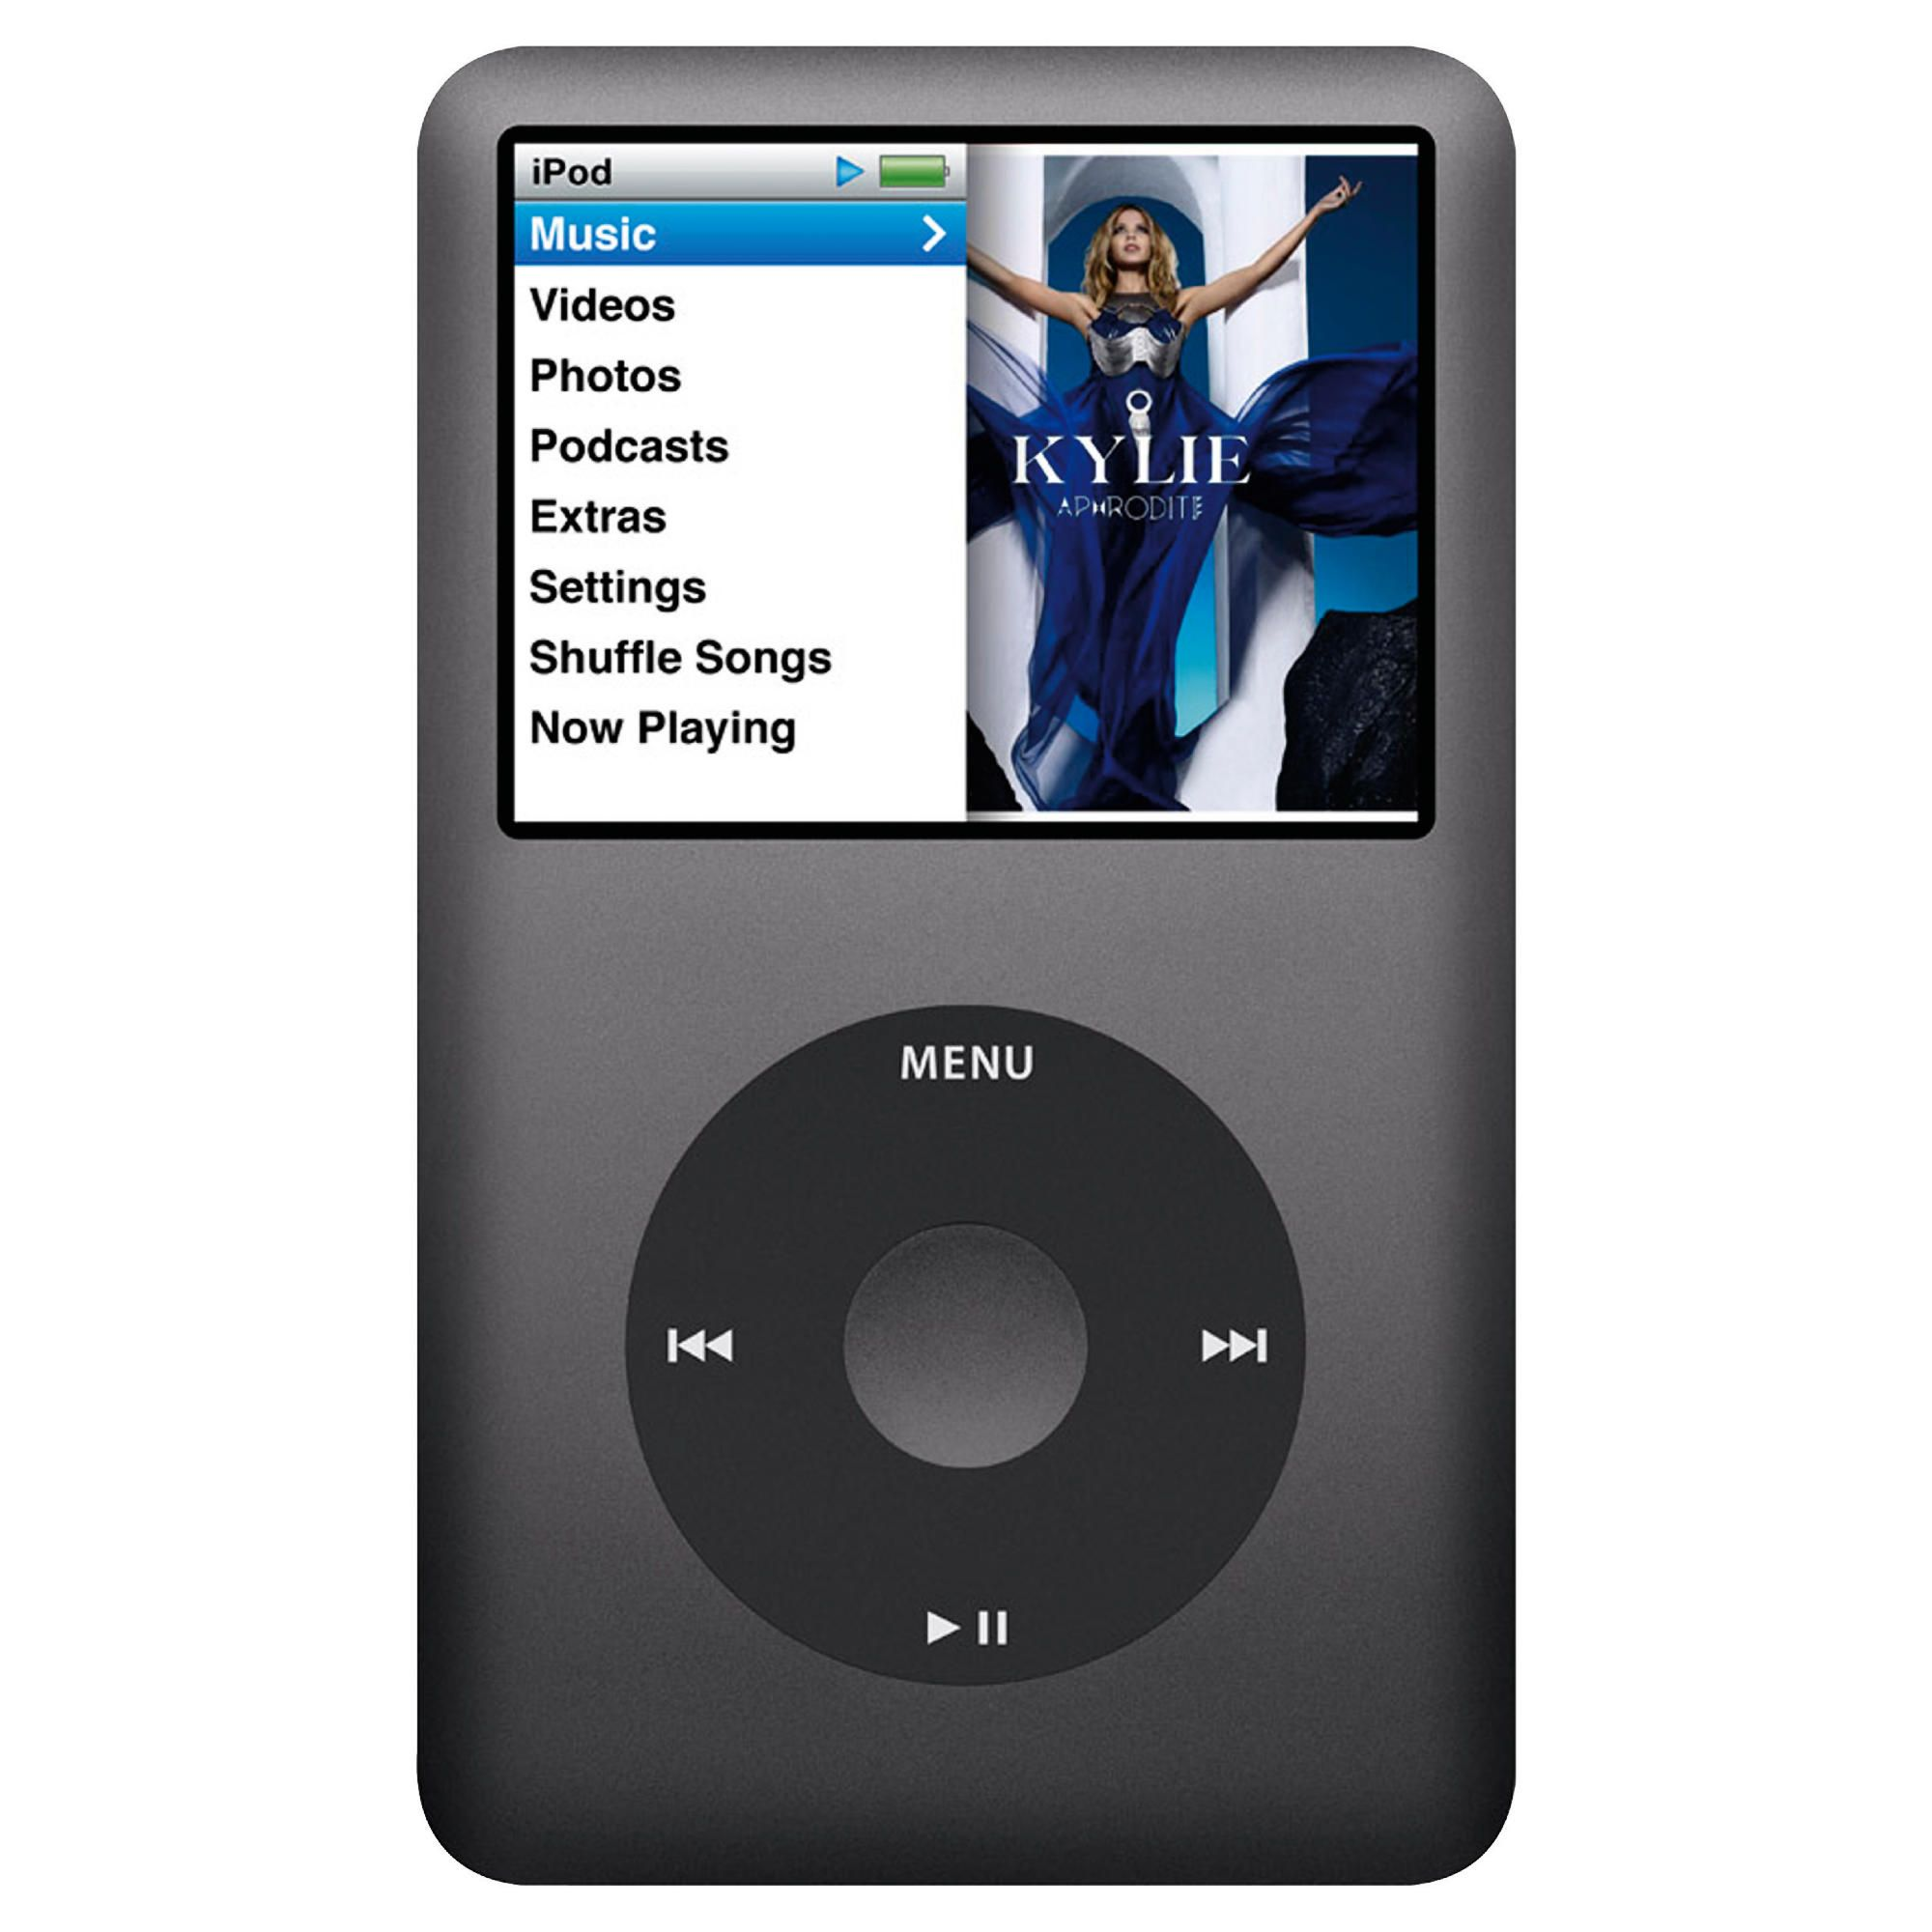 The iPod Classic remains in high demand on the secondary market, 3 months after Apple retired it